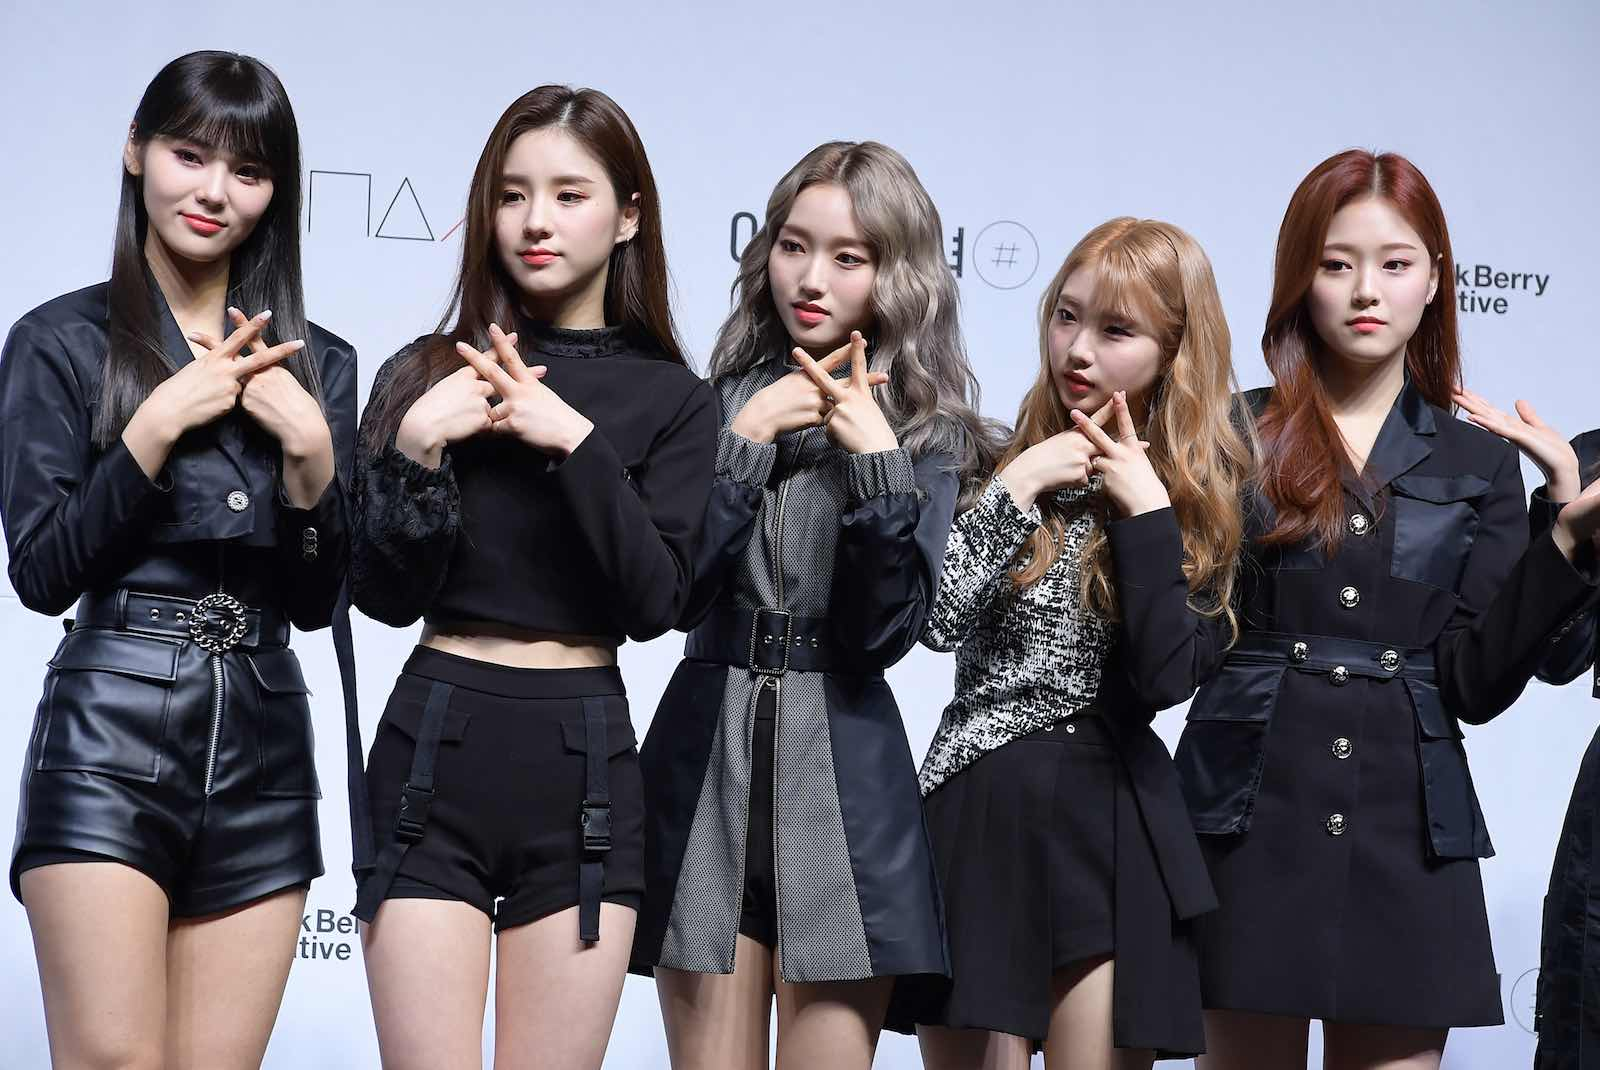 South Korean girl group LOONA promoting an album in February: K-pop superfans are ever active online (The Chosunilbo JNS via Getty Images)